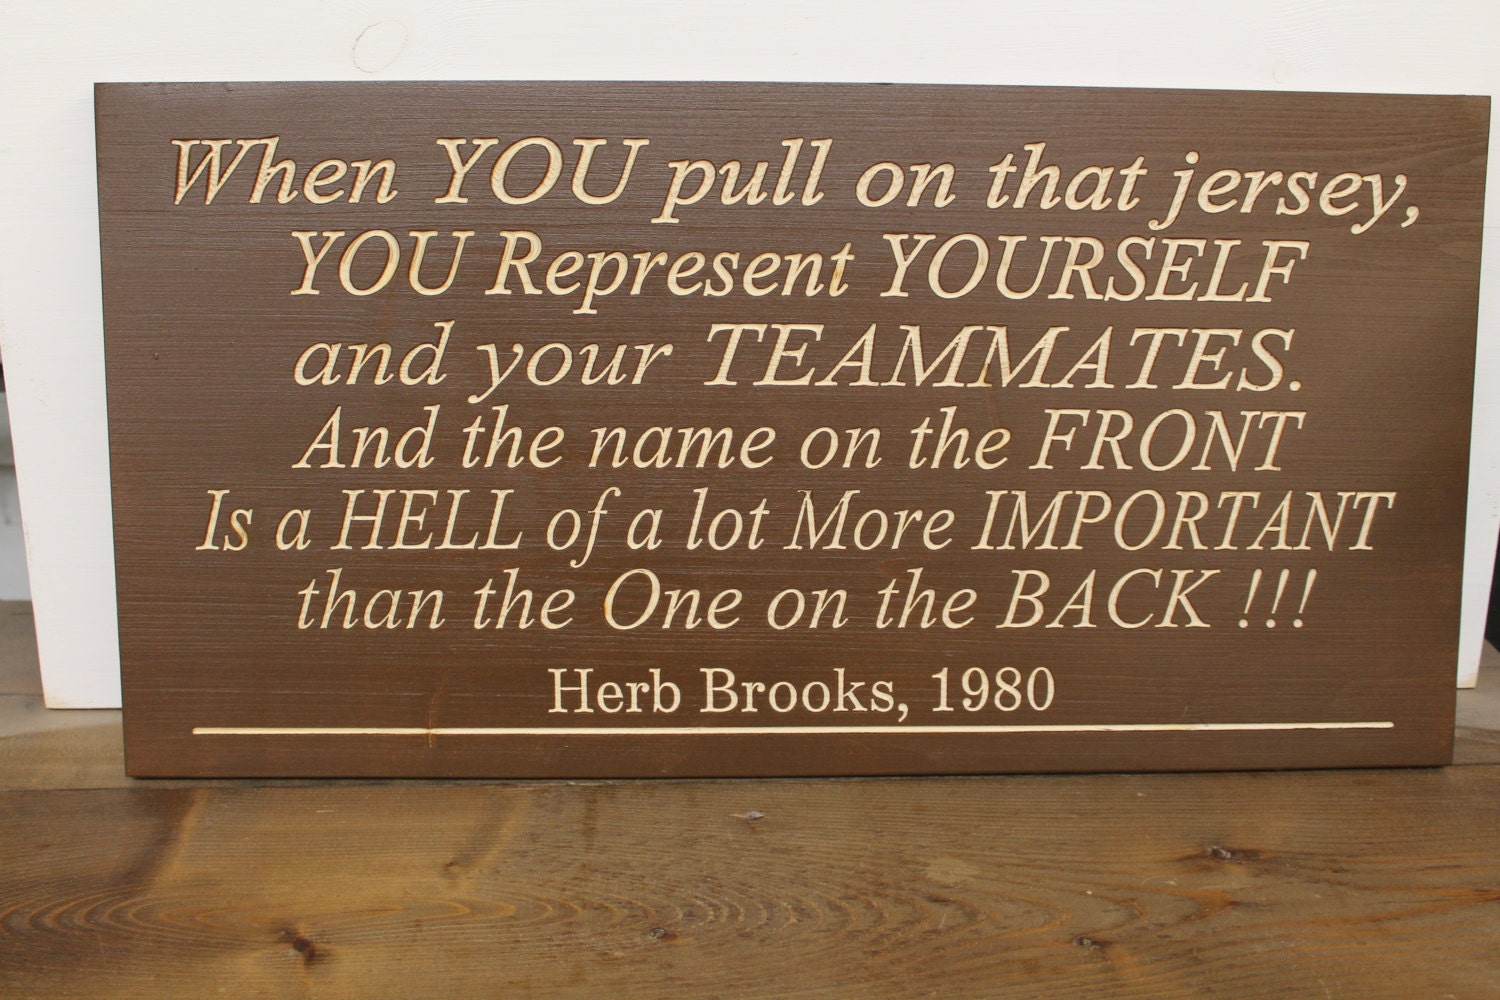 Man Cave Rules : Herb brooks quote usa hockey team 1980 olympics